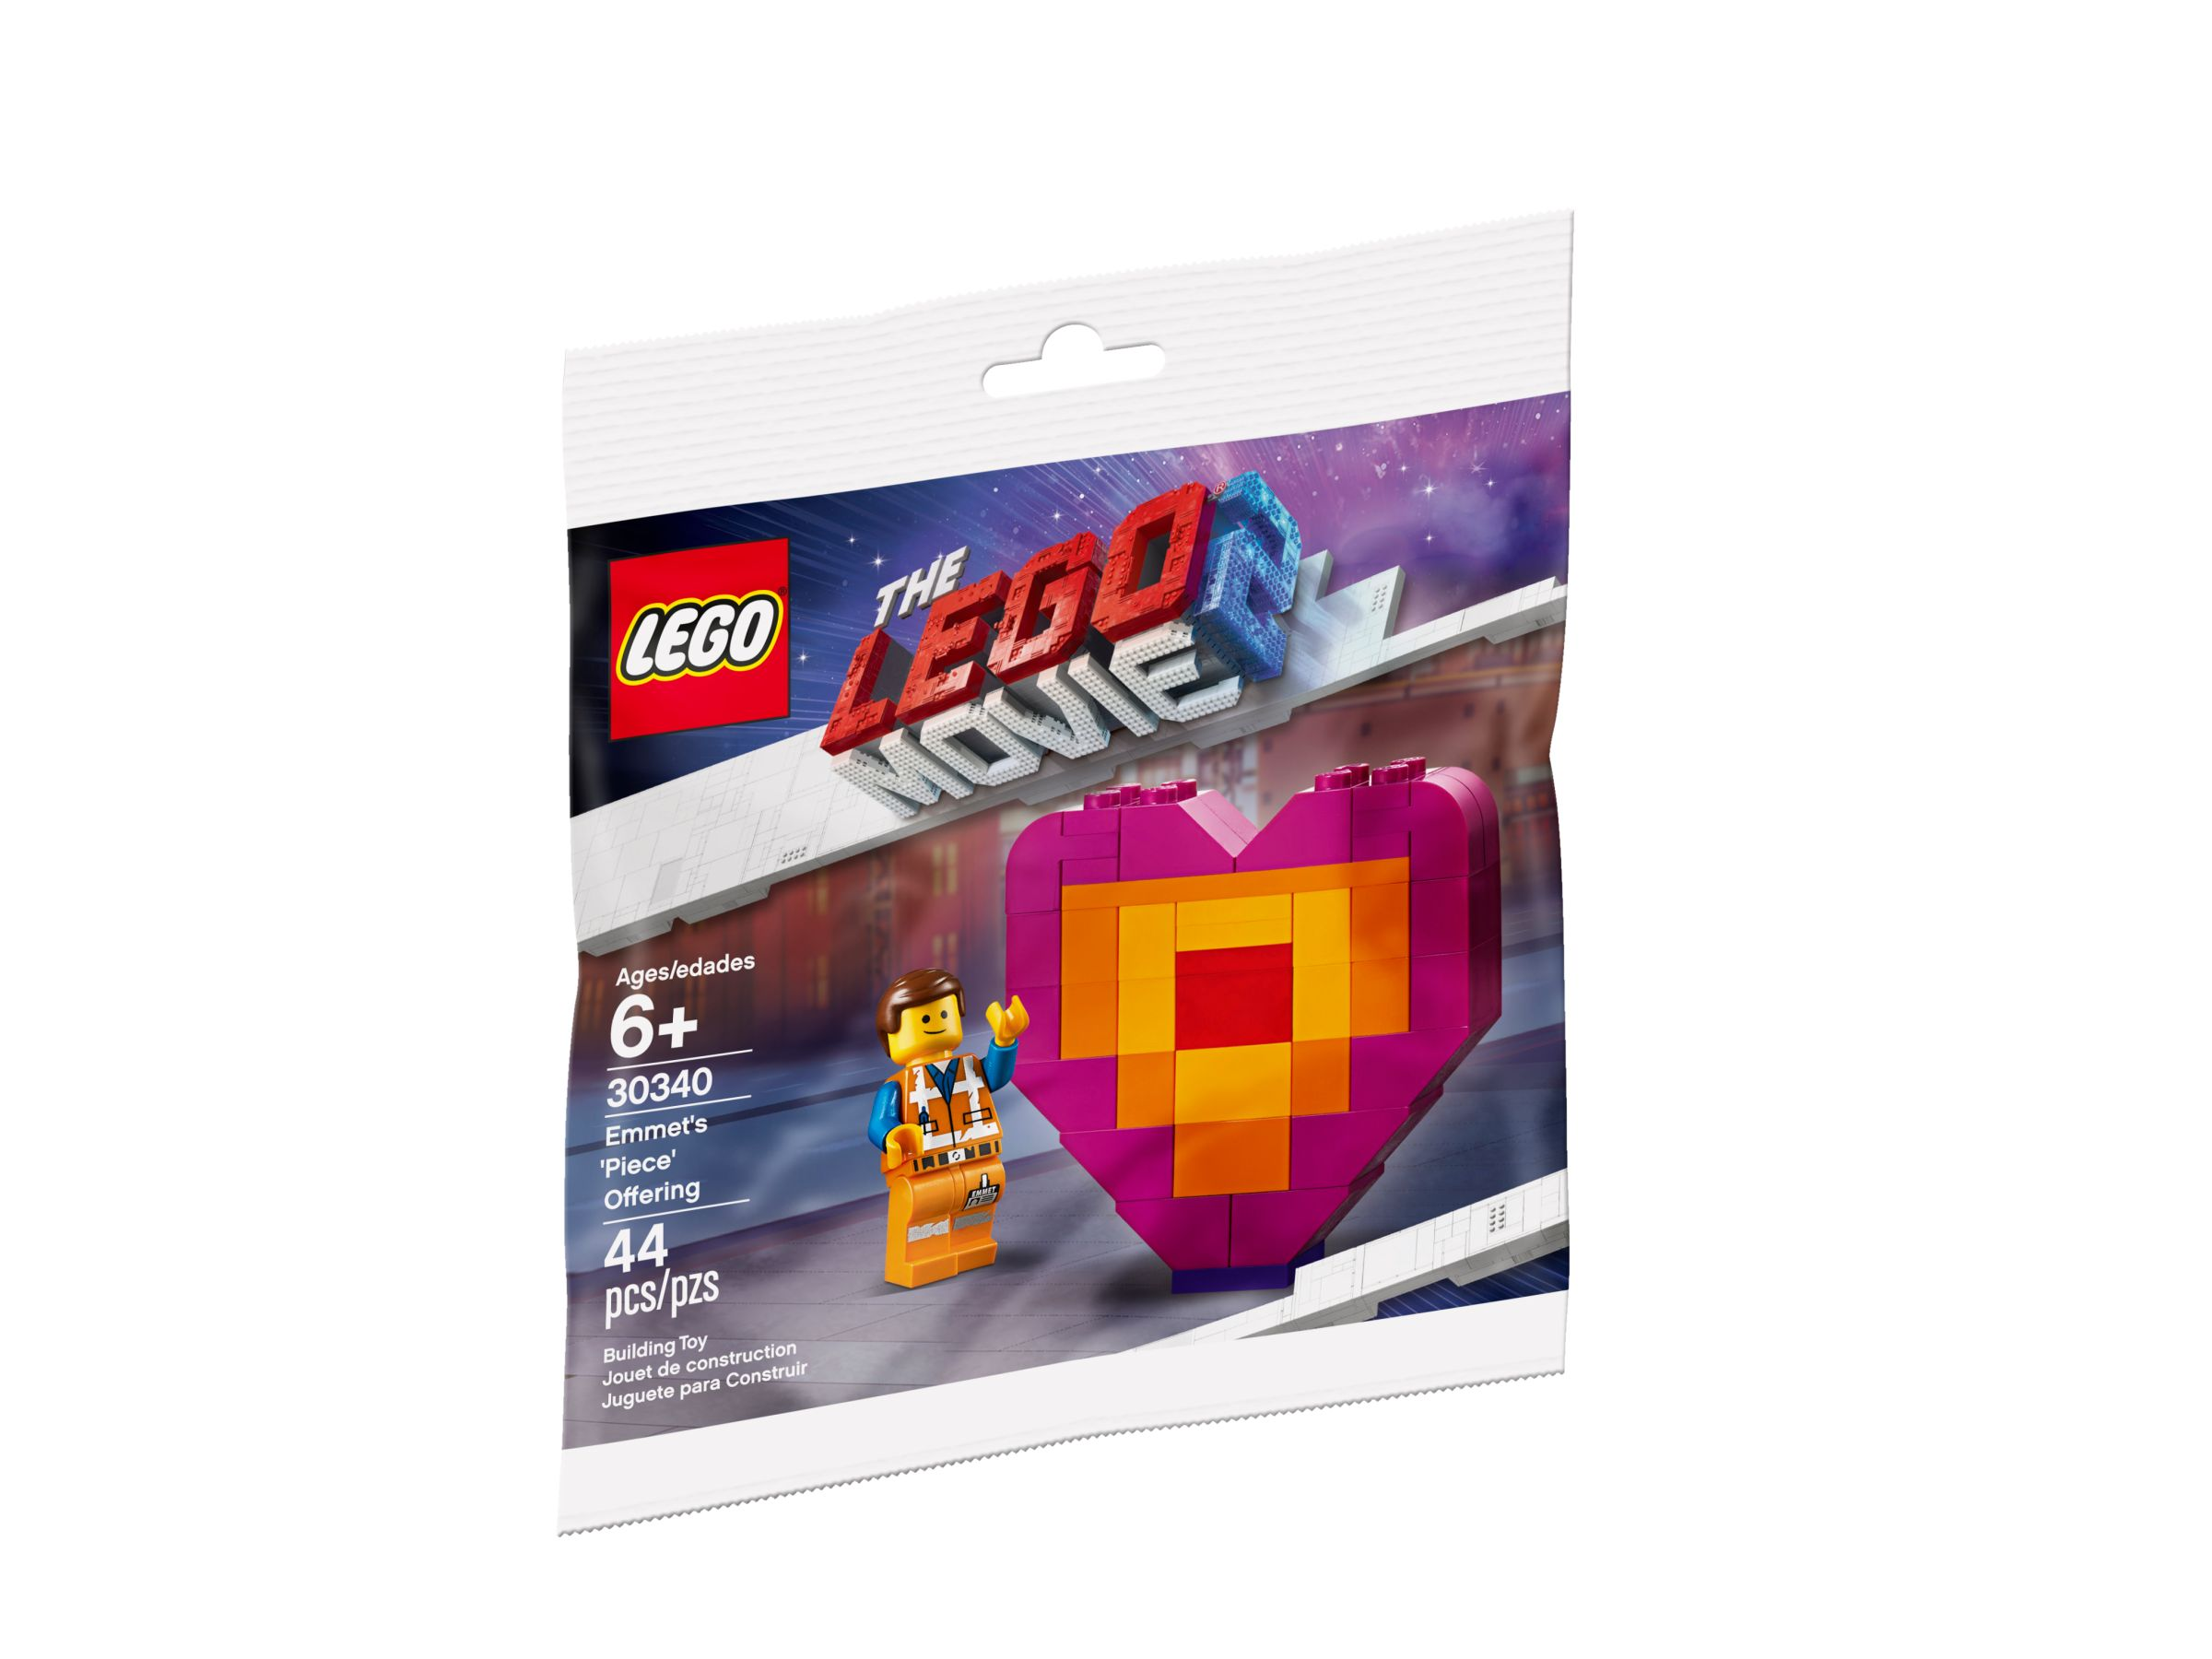 LEGO The LEGO Movie 2 30340 Emmet's Piece Offering LEGO_30340_alt1.jpg